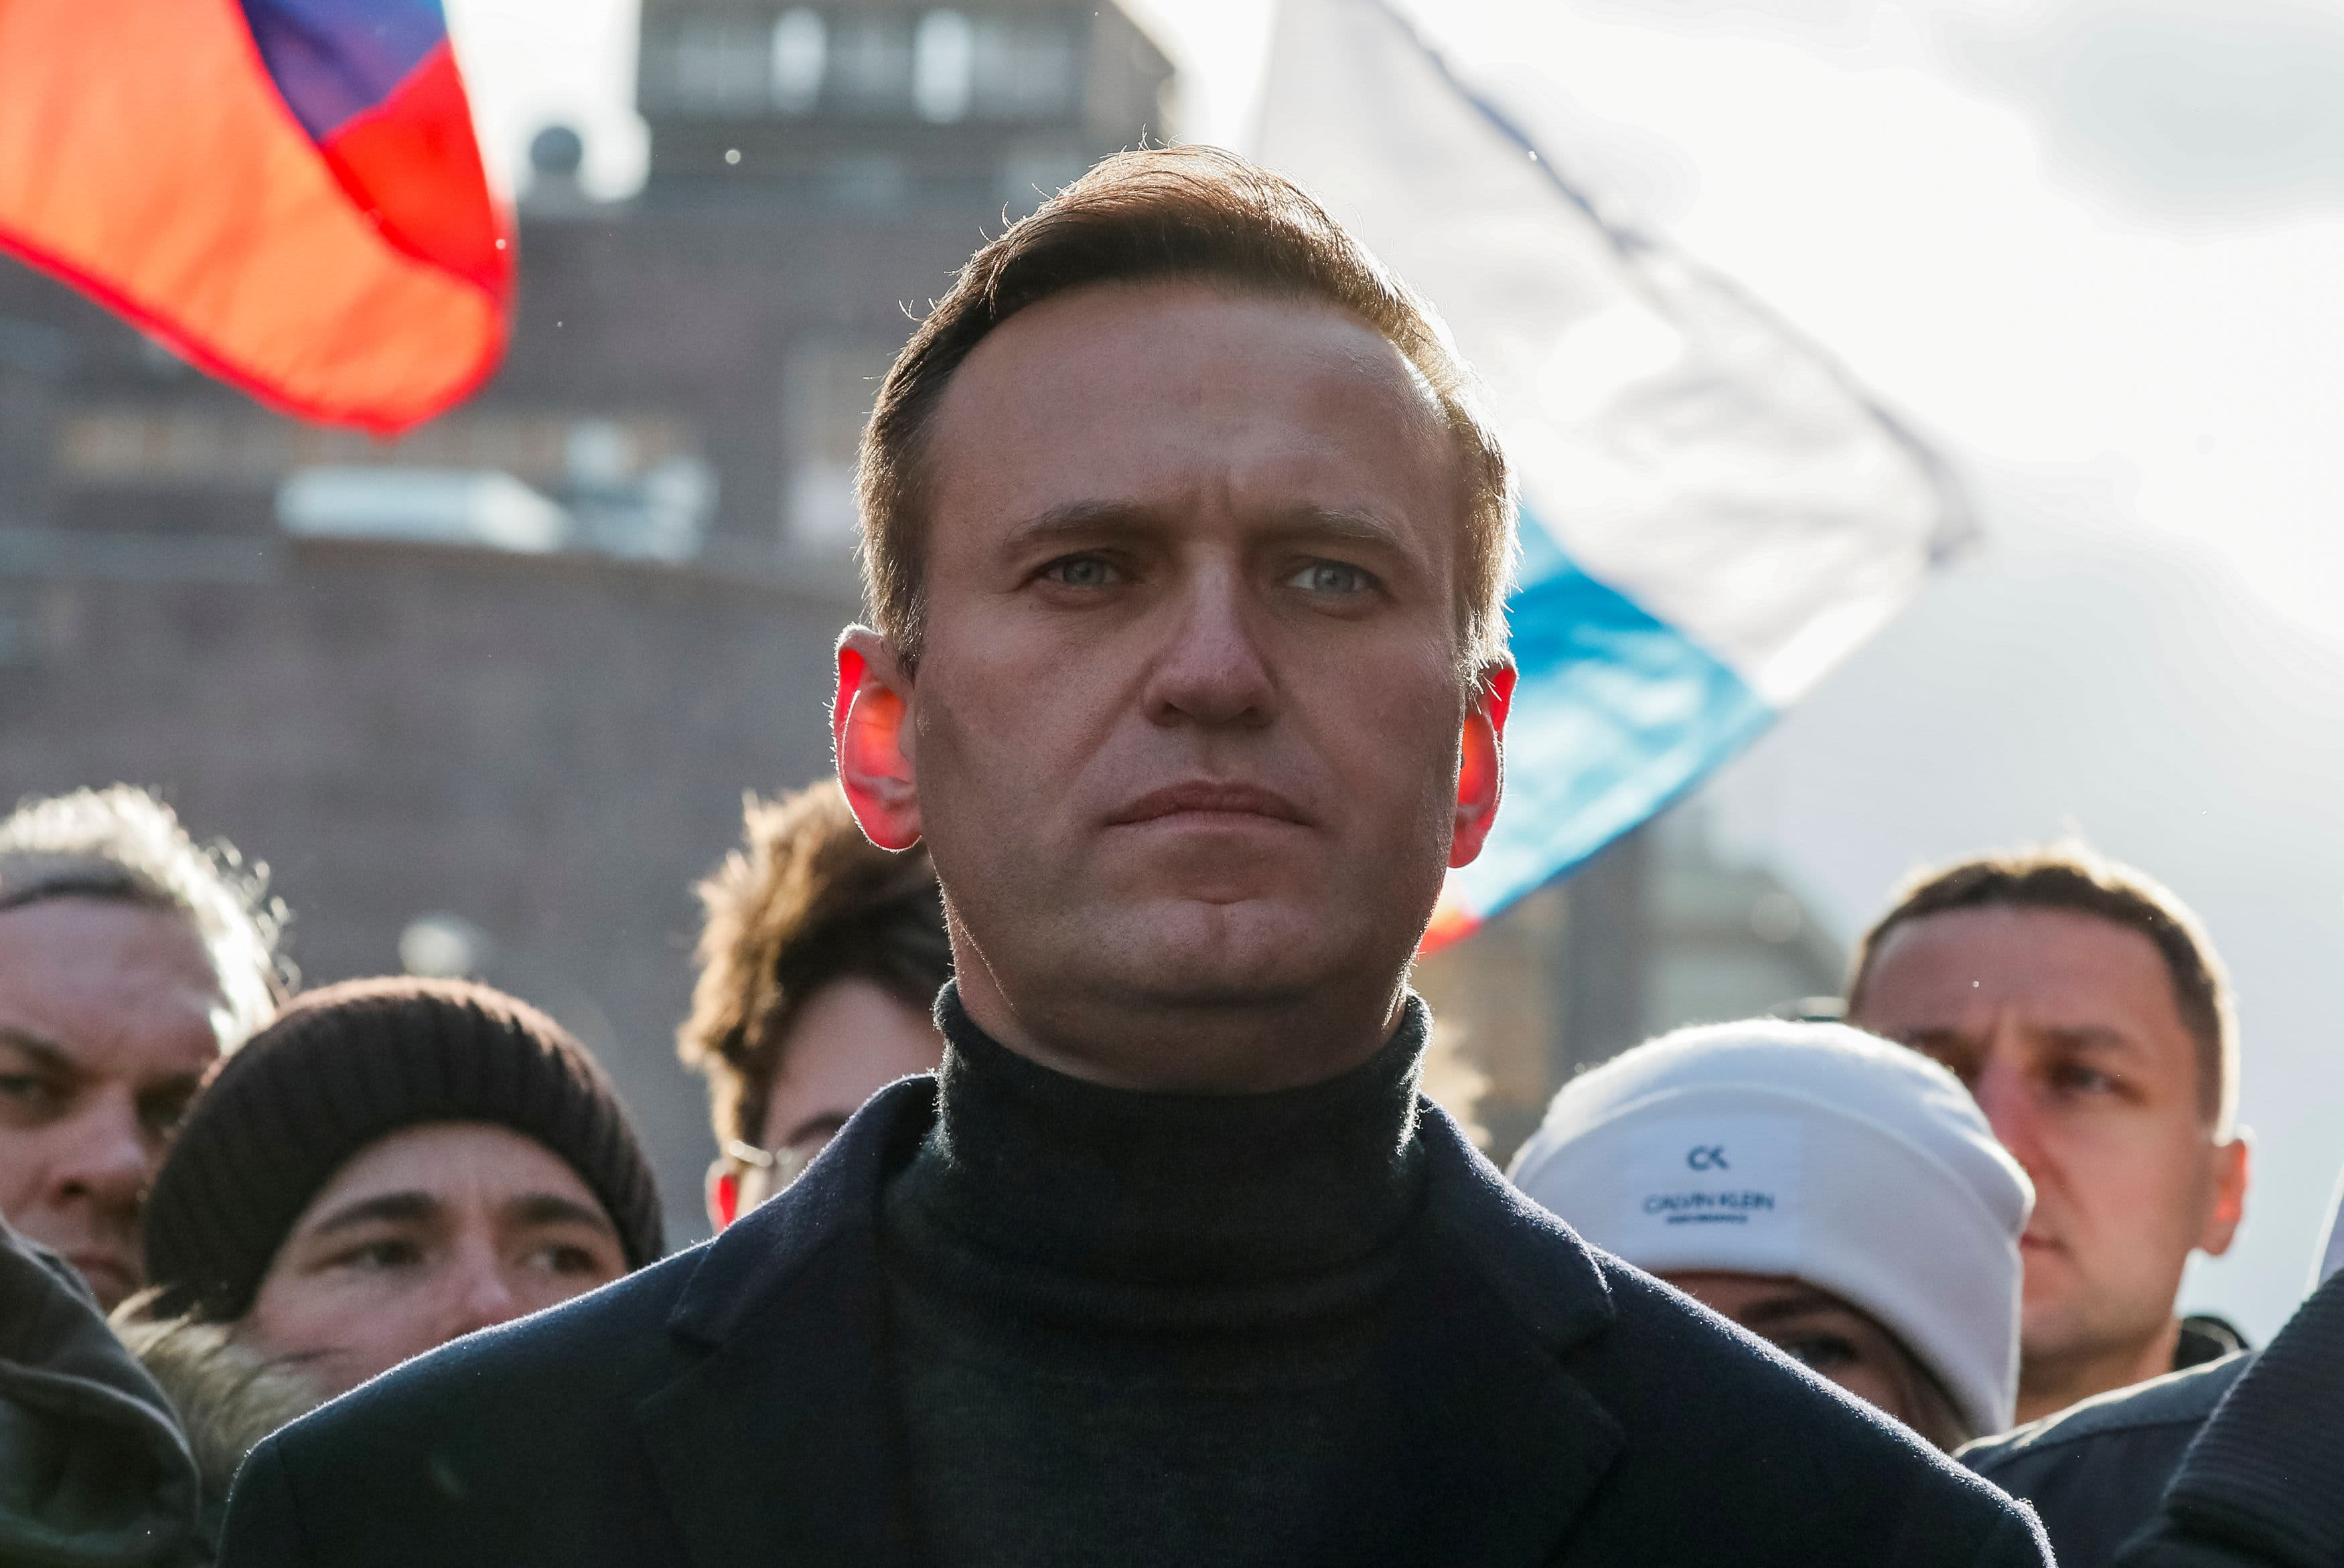 Russian Opposition Politician Navalny Poisoned Hospitalized